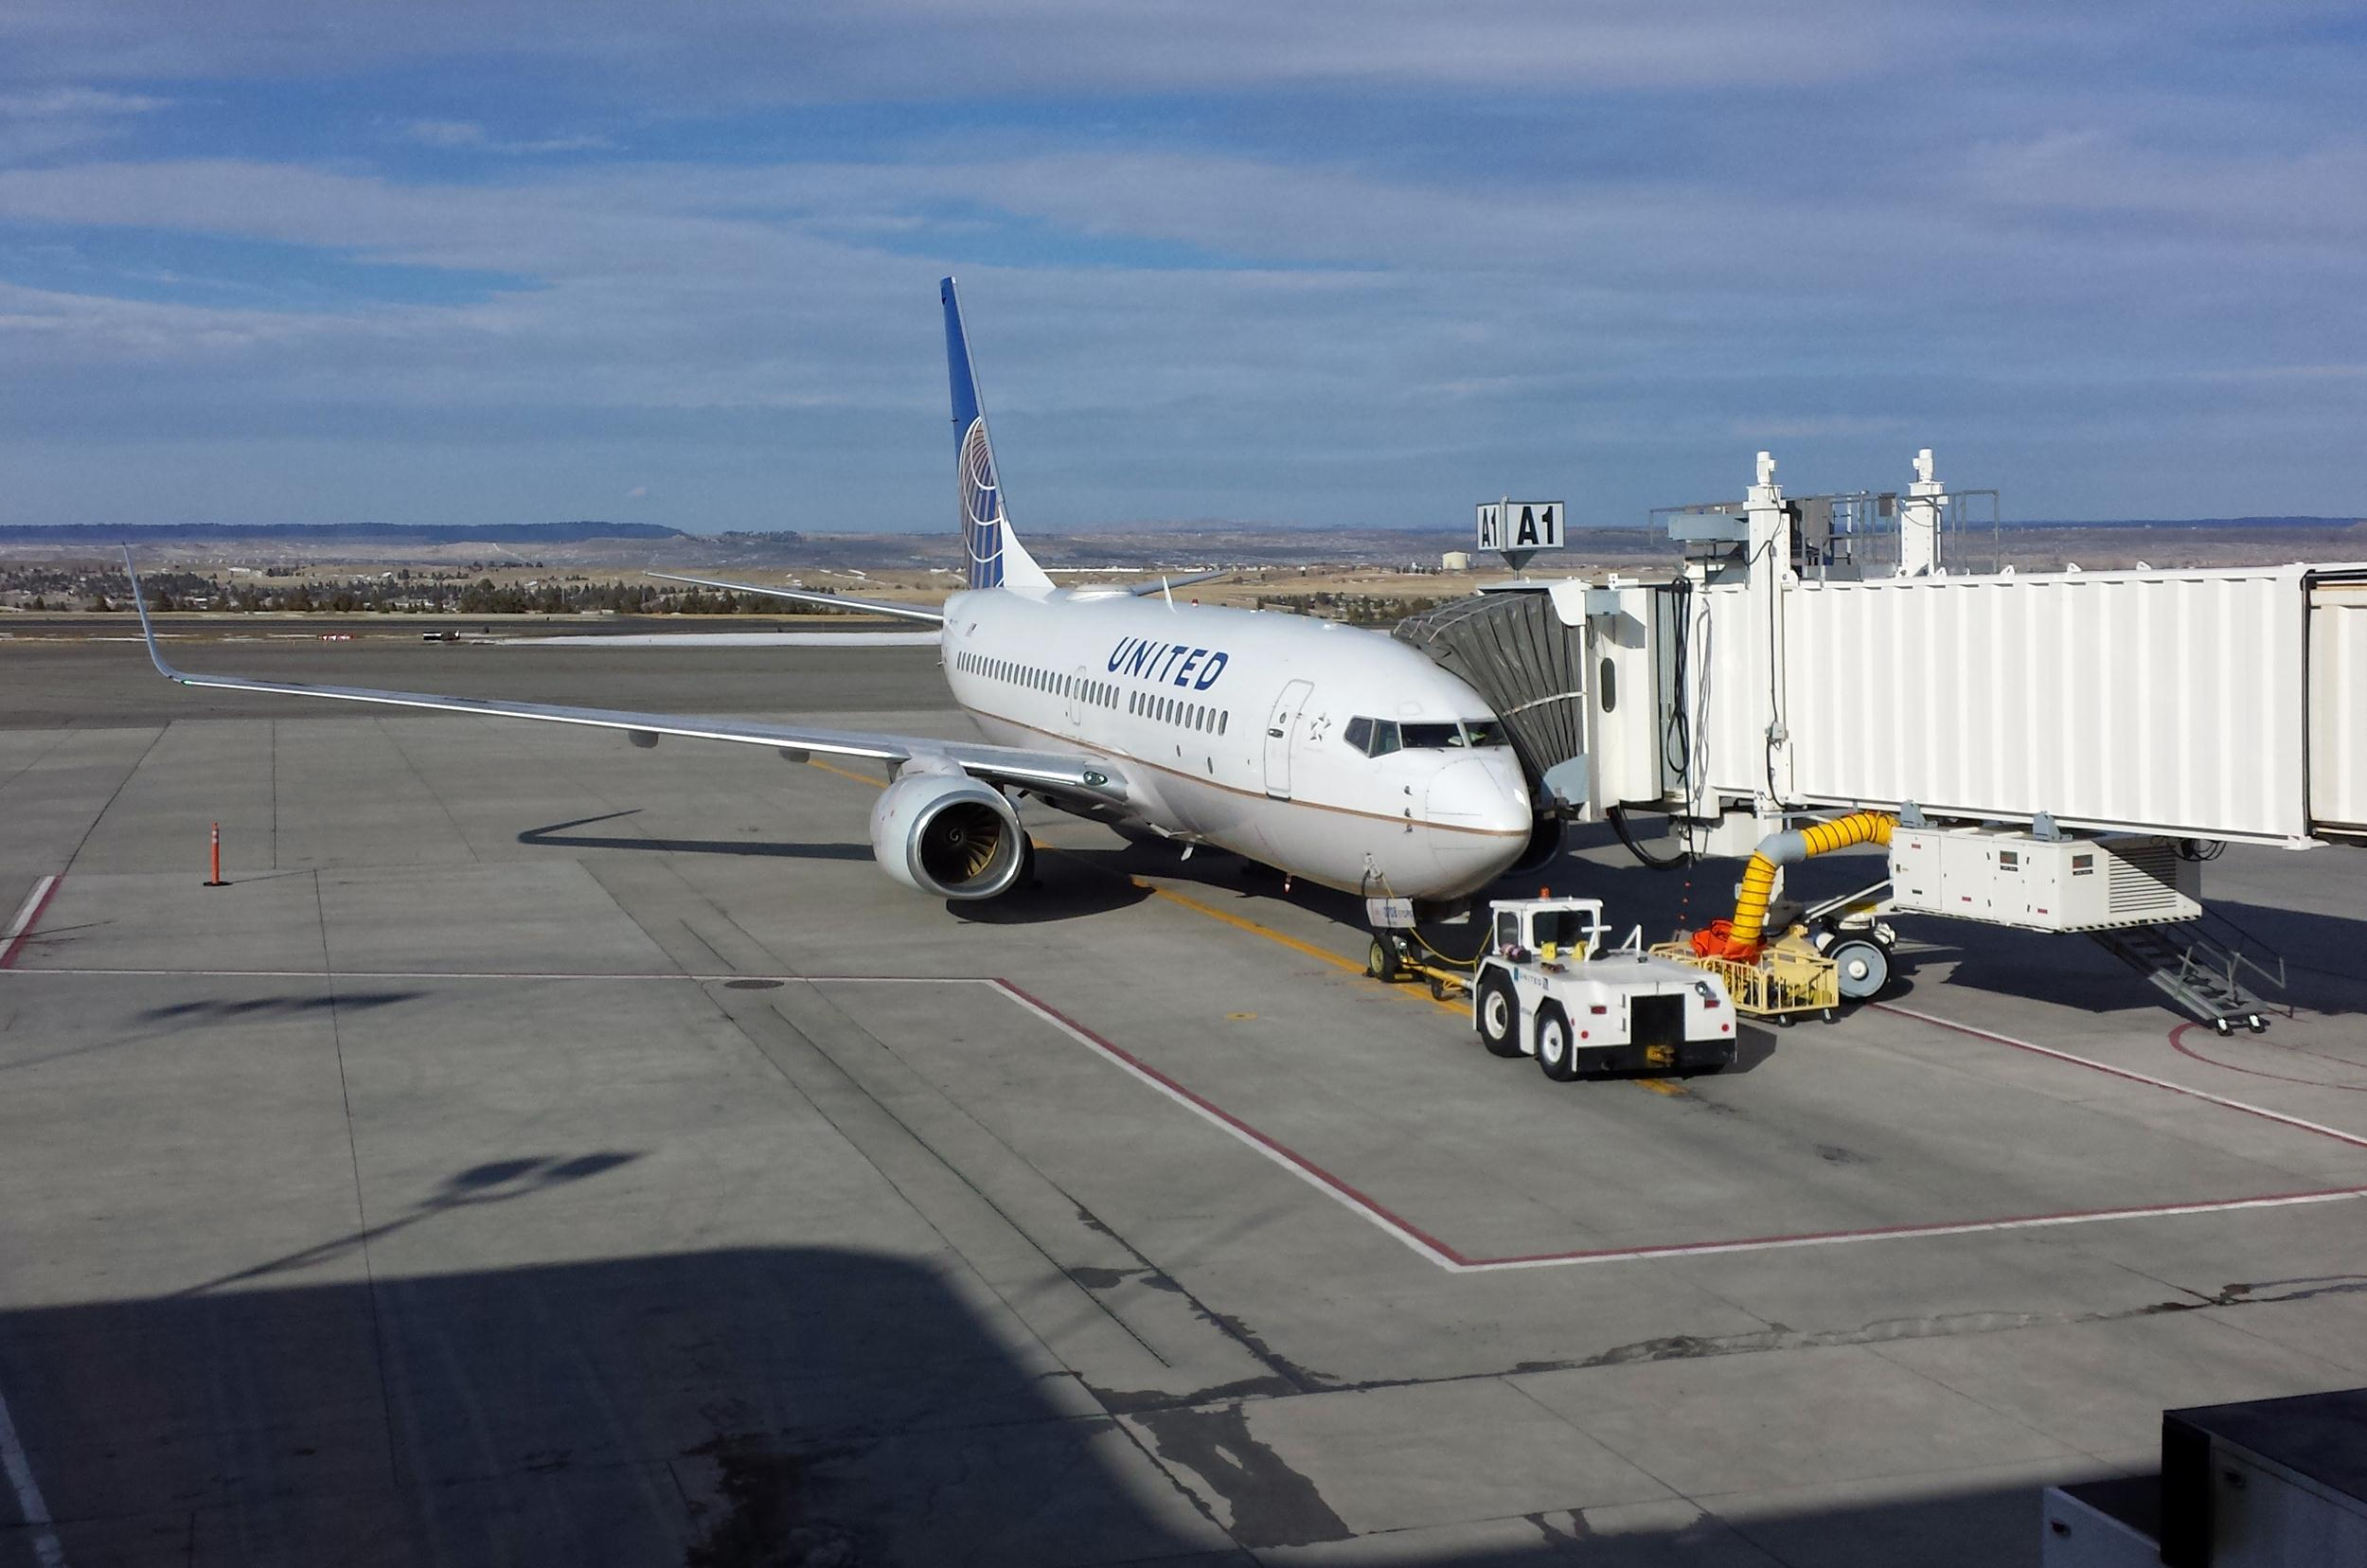 A United plane at the Billings Loan International Airport in Montana after it made an emergency landing.